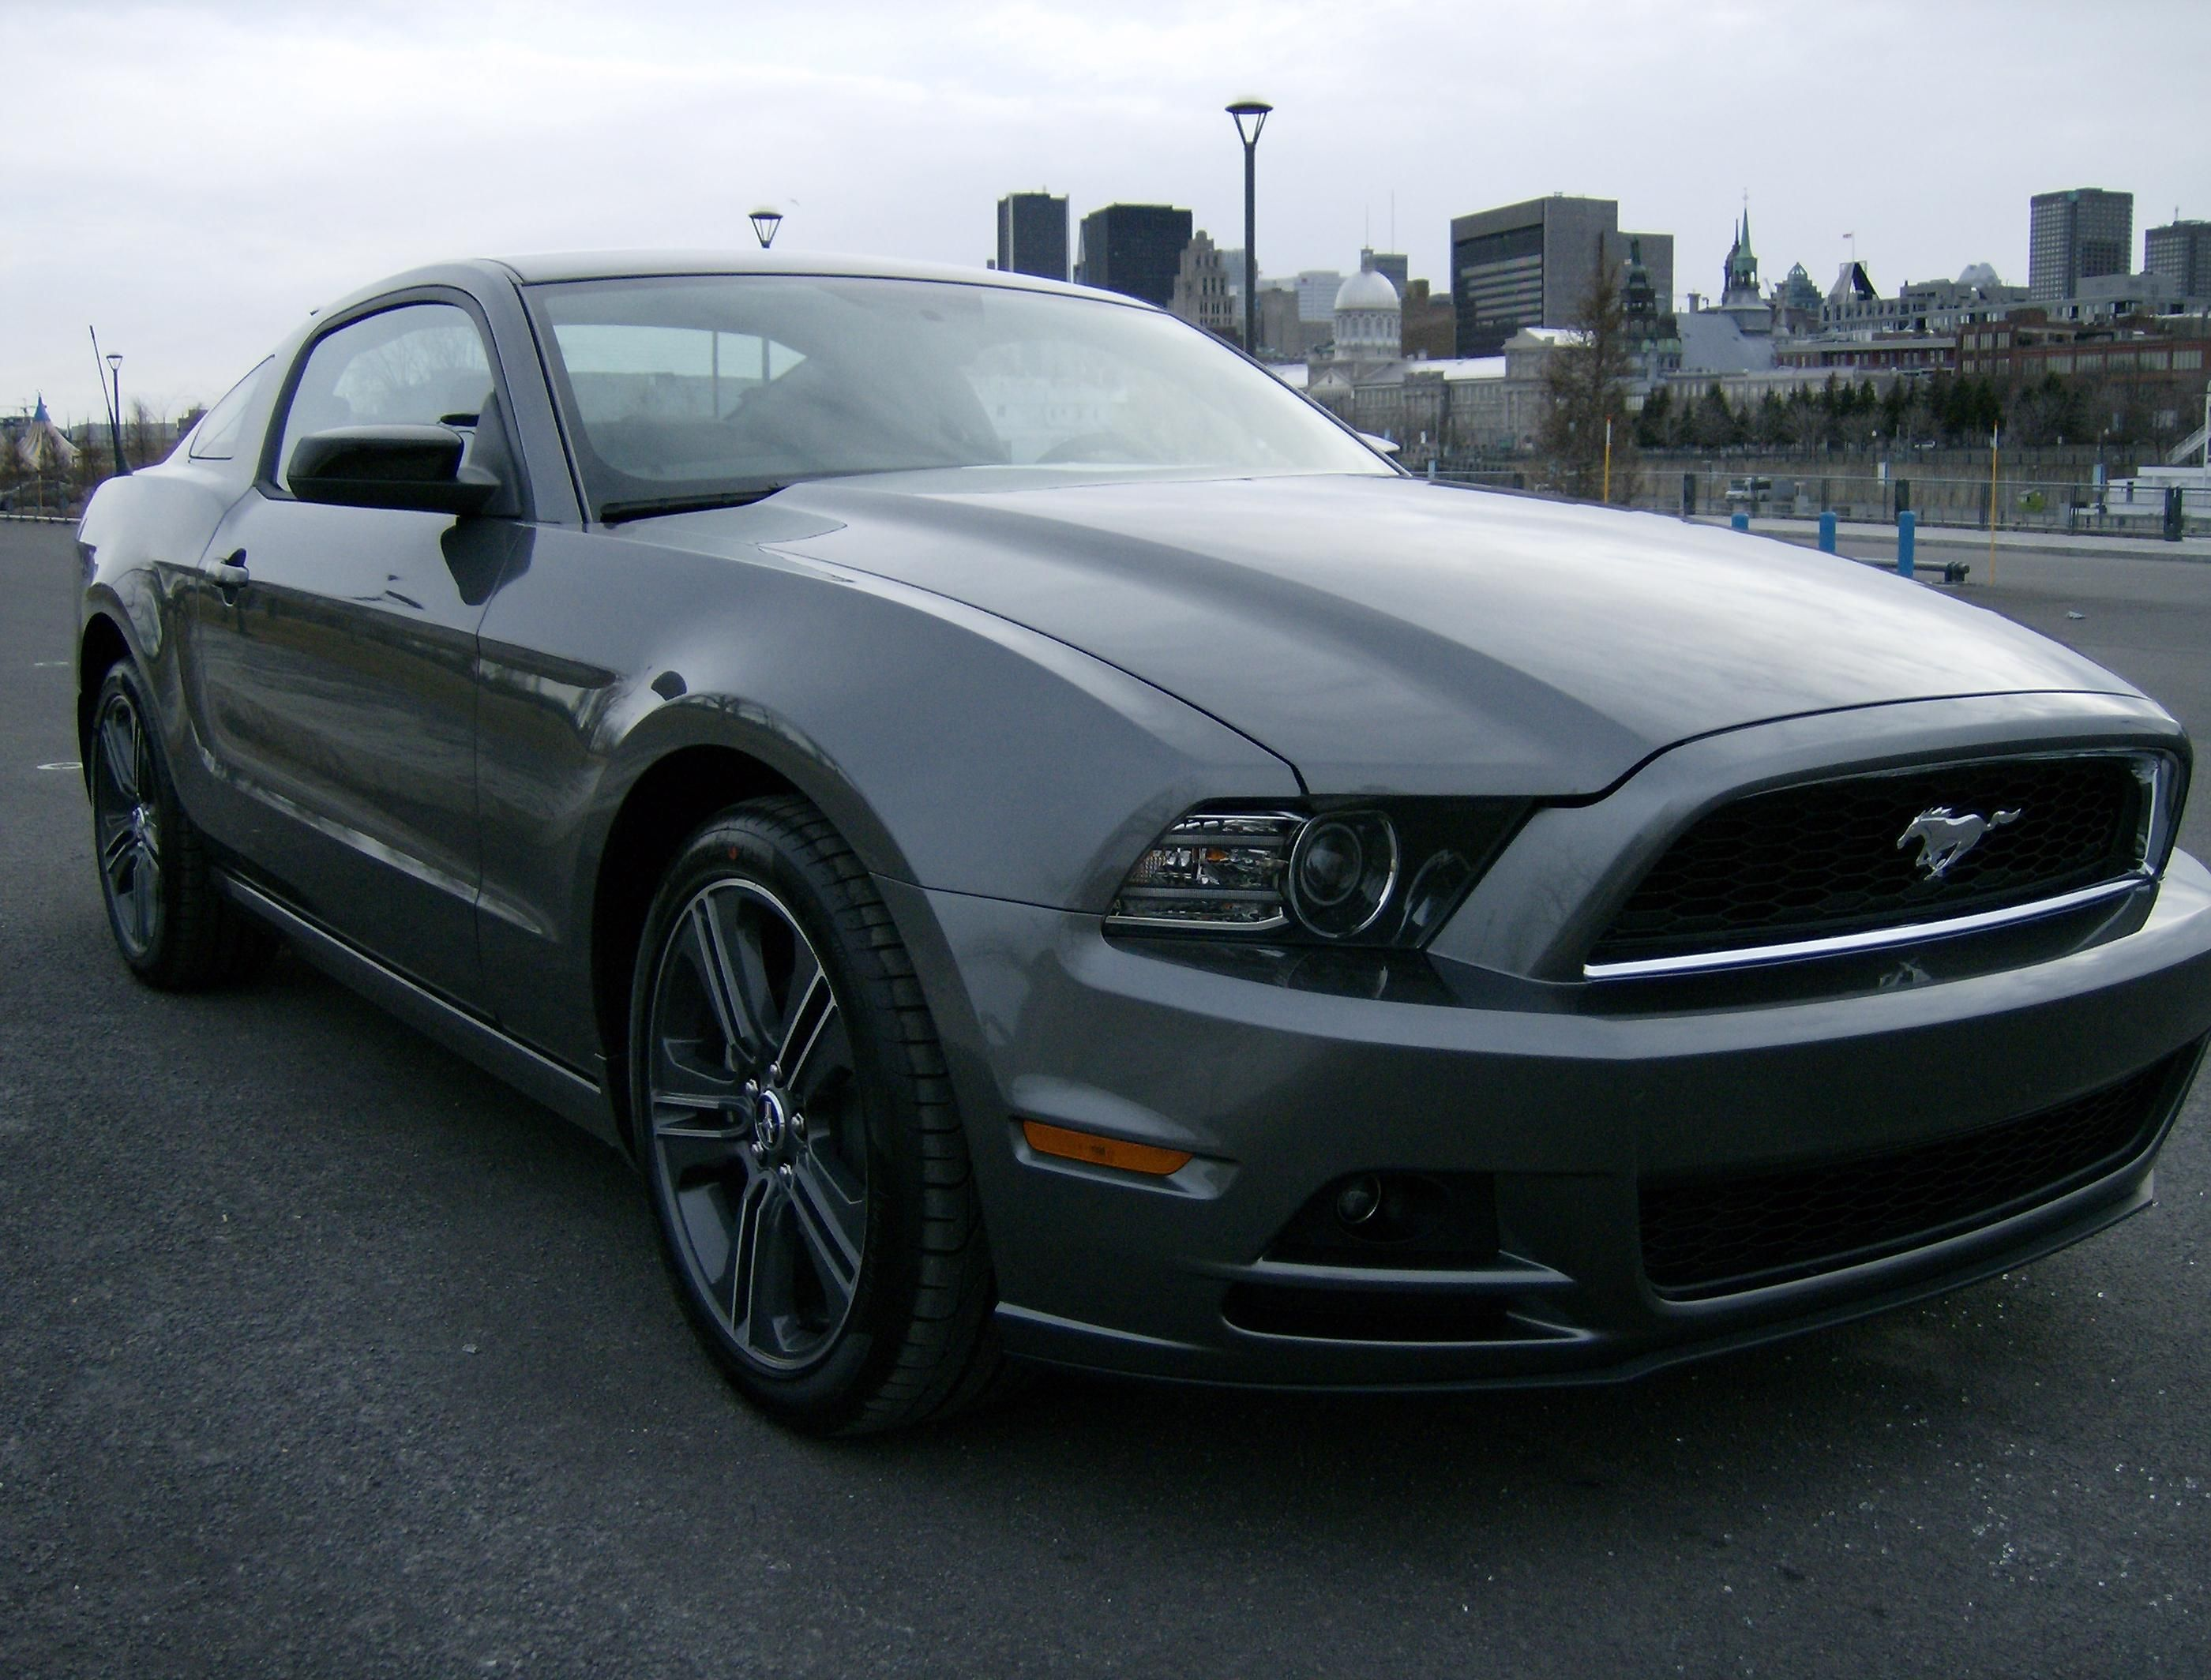 2013 ford mustang premium v6 cars and bikes ford mustang